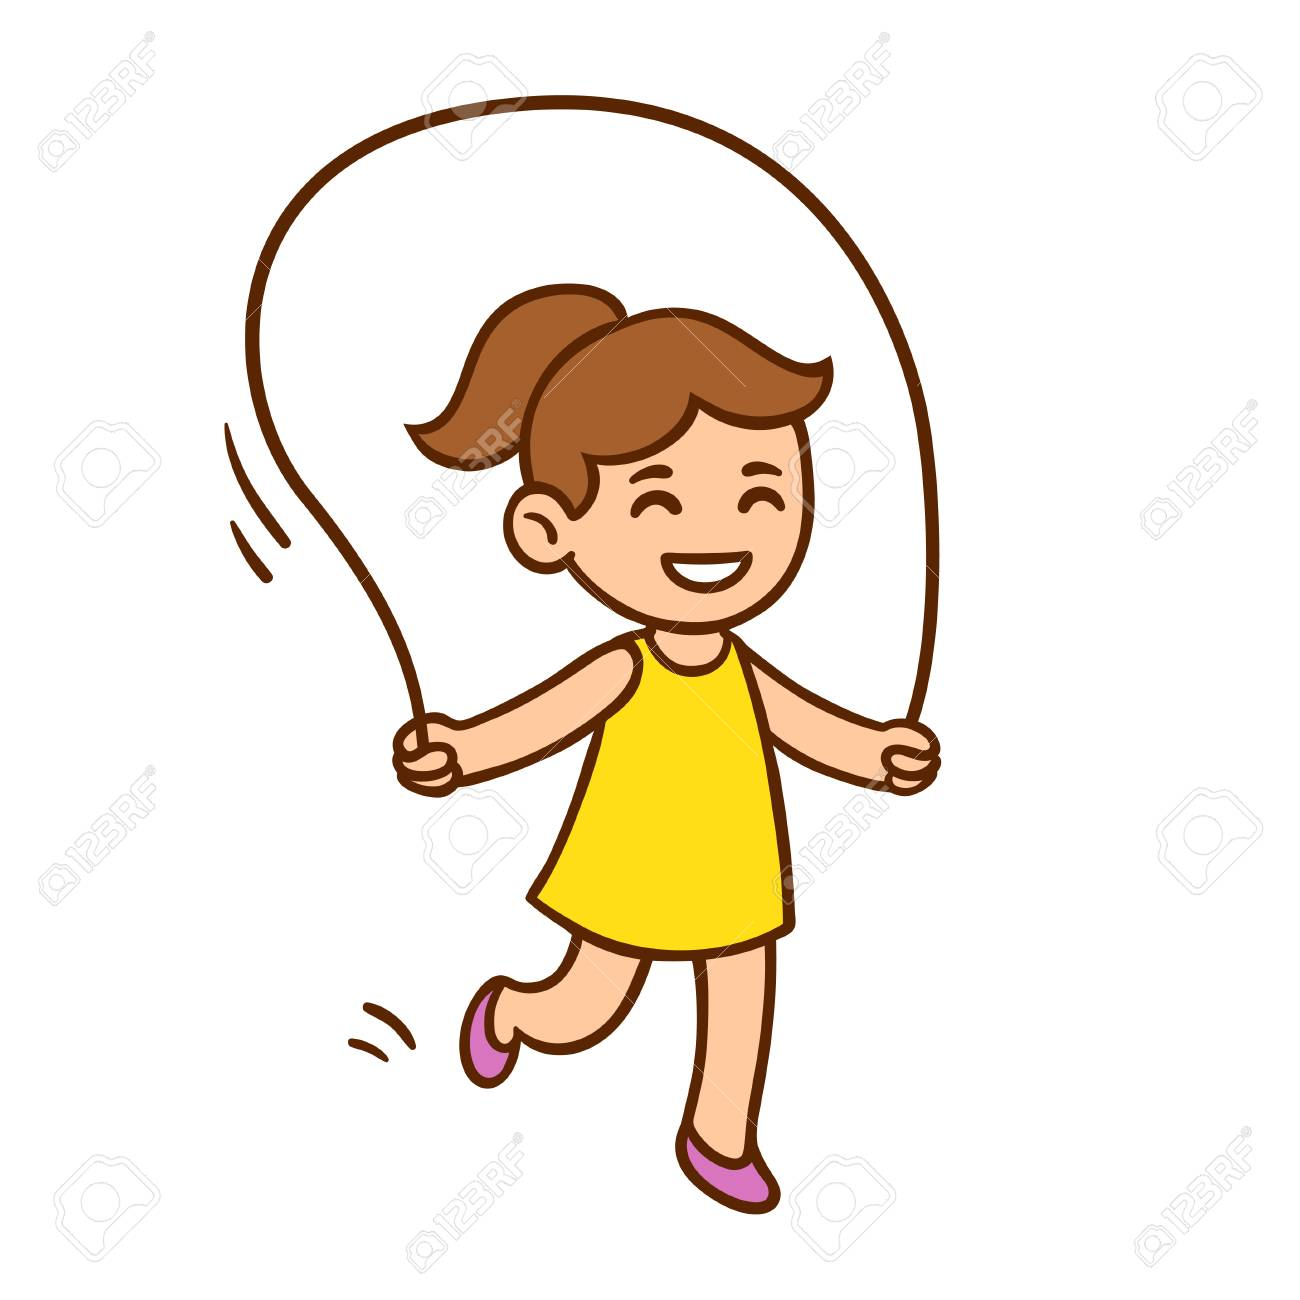 1300x1300 Vector Illustration Of Cute Cartoon Little Girl Jumping Rope